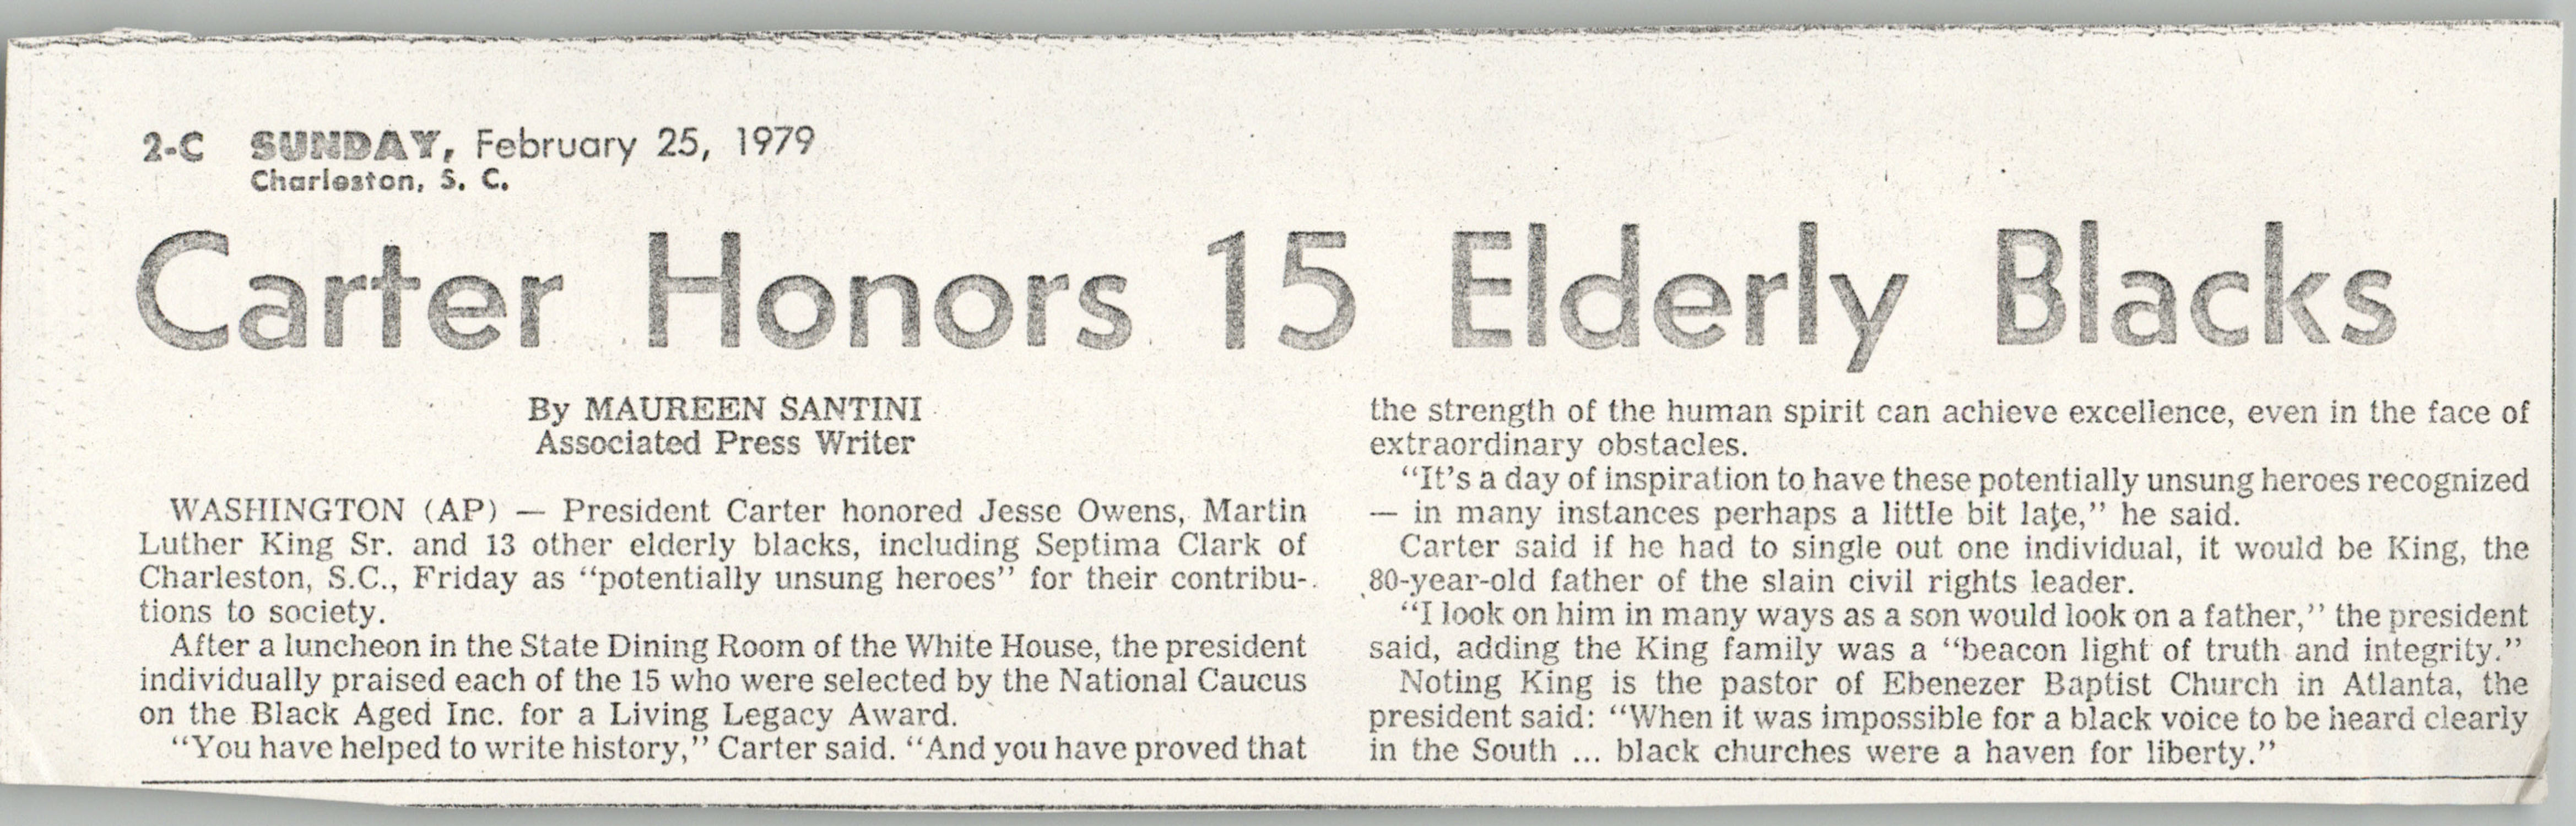 Newspaper Article, February 25, 1979